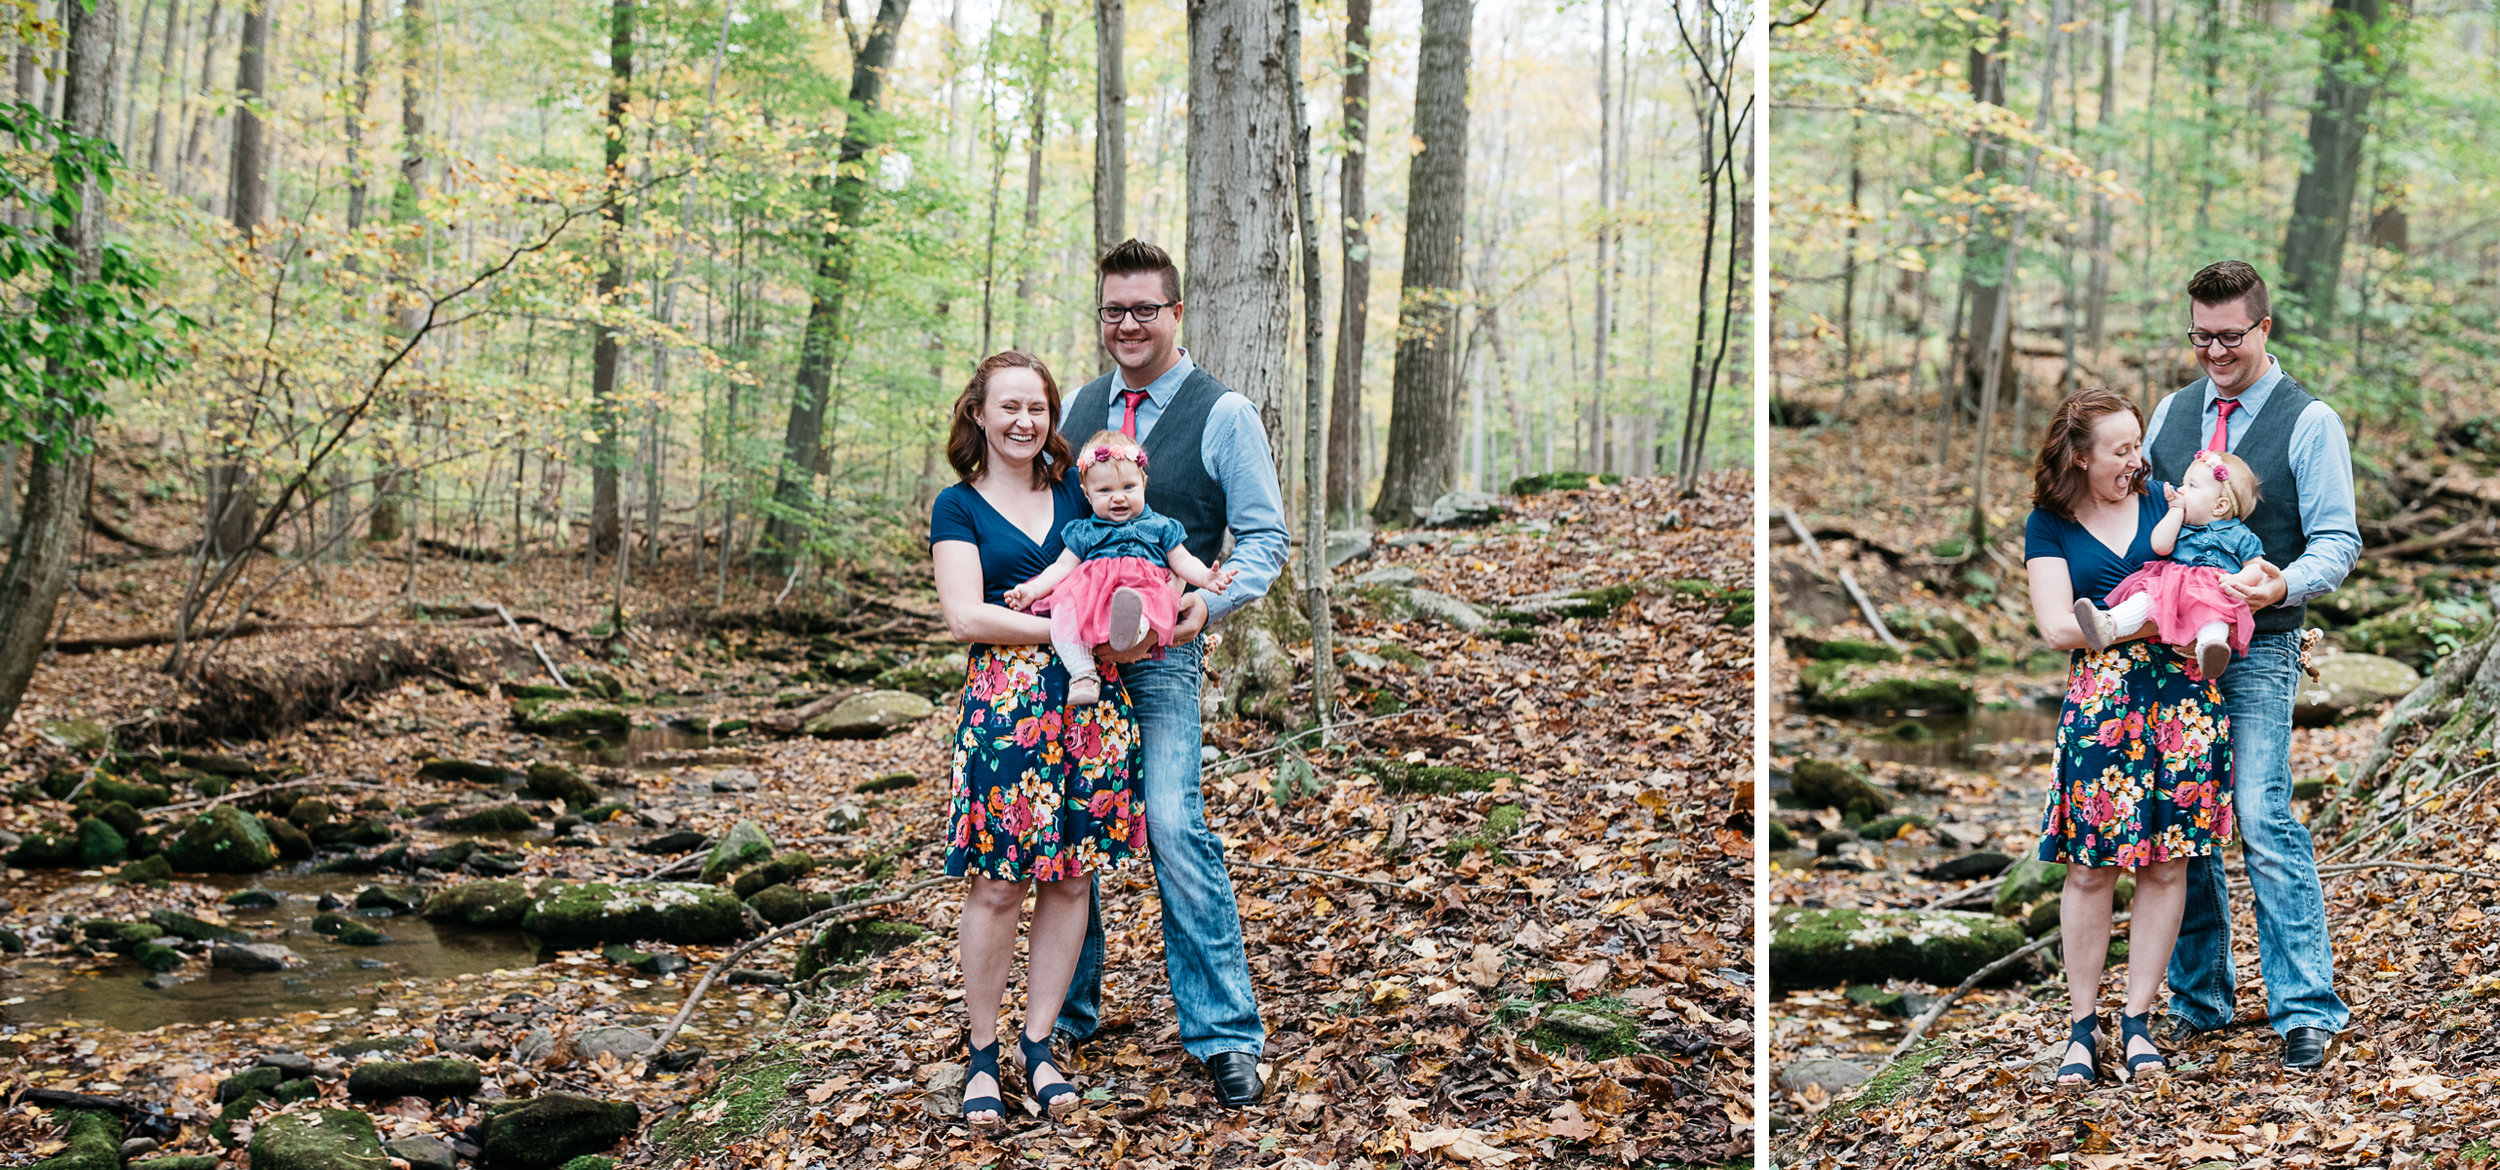 ligonier family photographer, pittsburgh photogrpaher mariah fisher.jpg